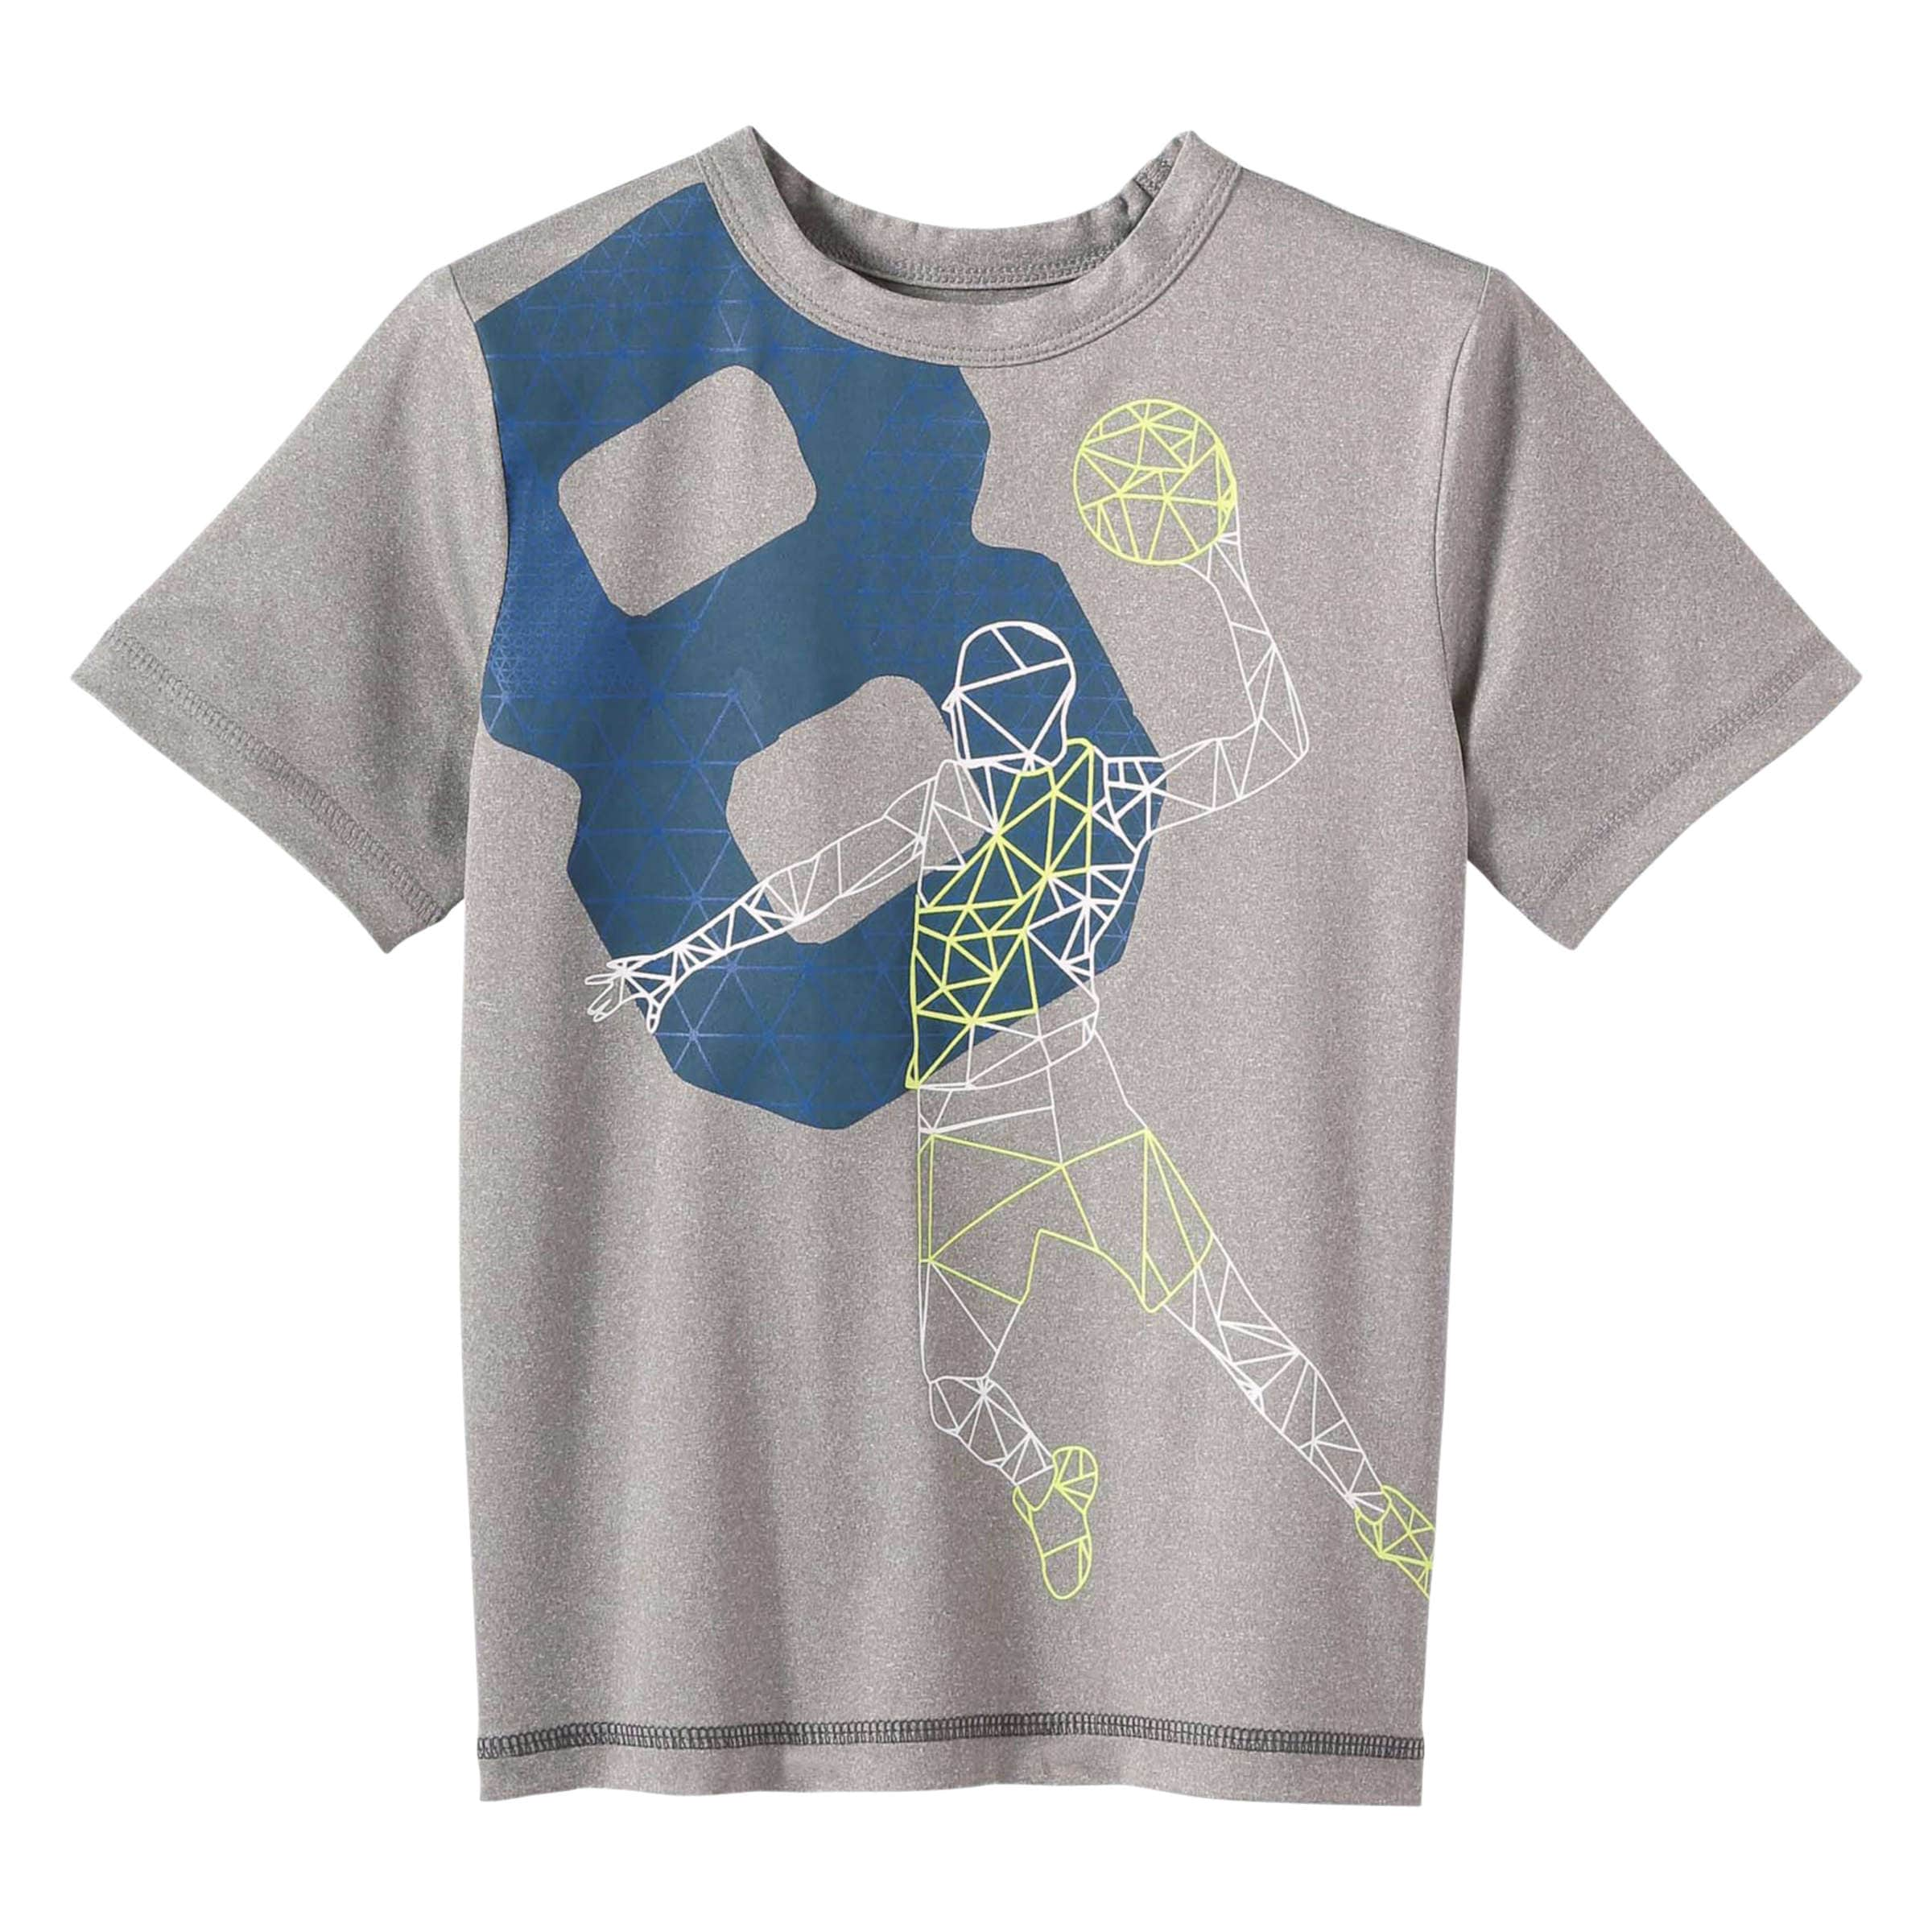 513bfcc5081d4 Toddler Boys  Graphic Crew Neck Tee in Light Grey Mix from Joe Fresh